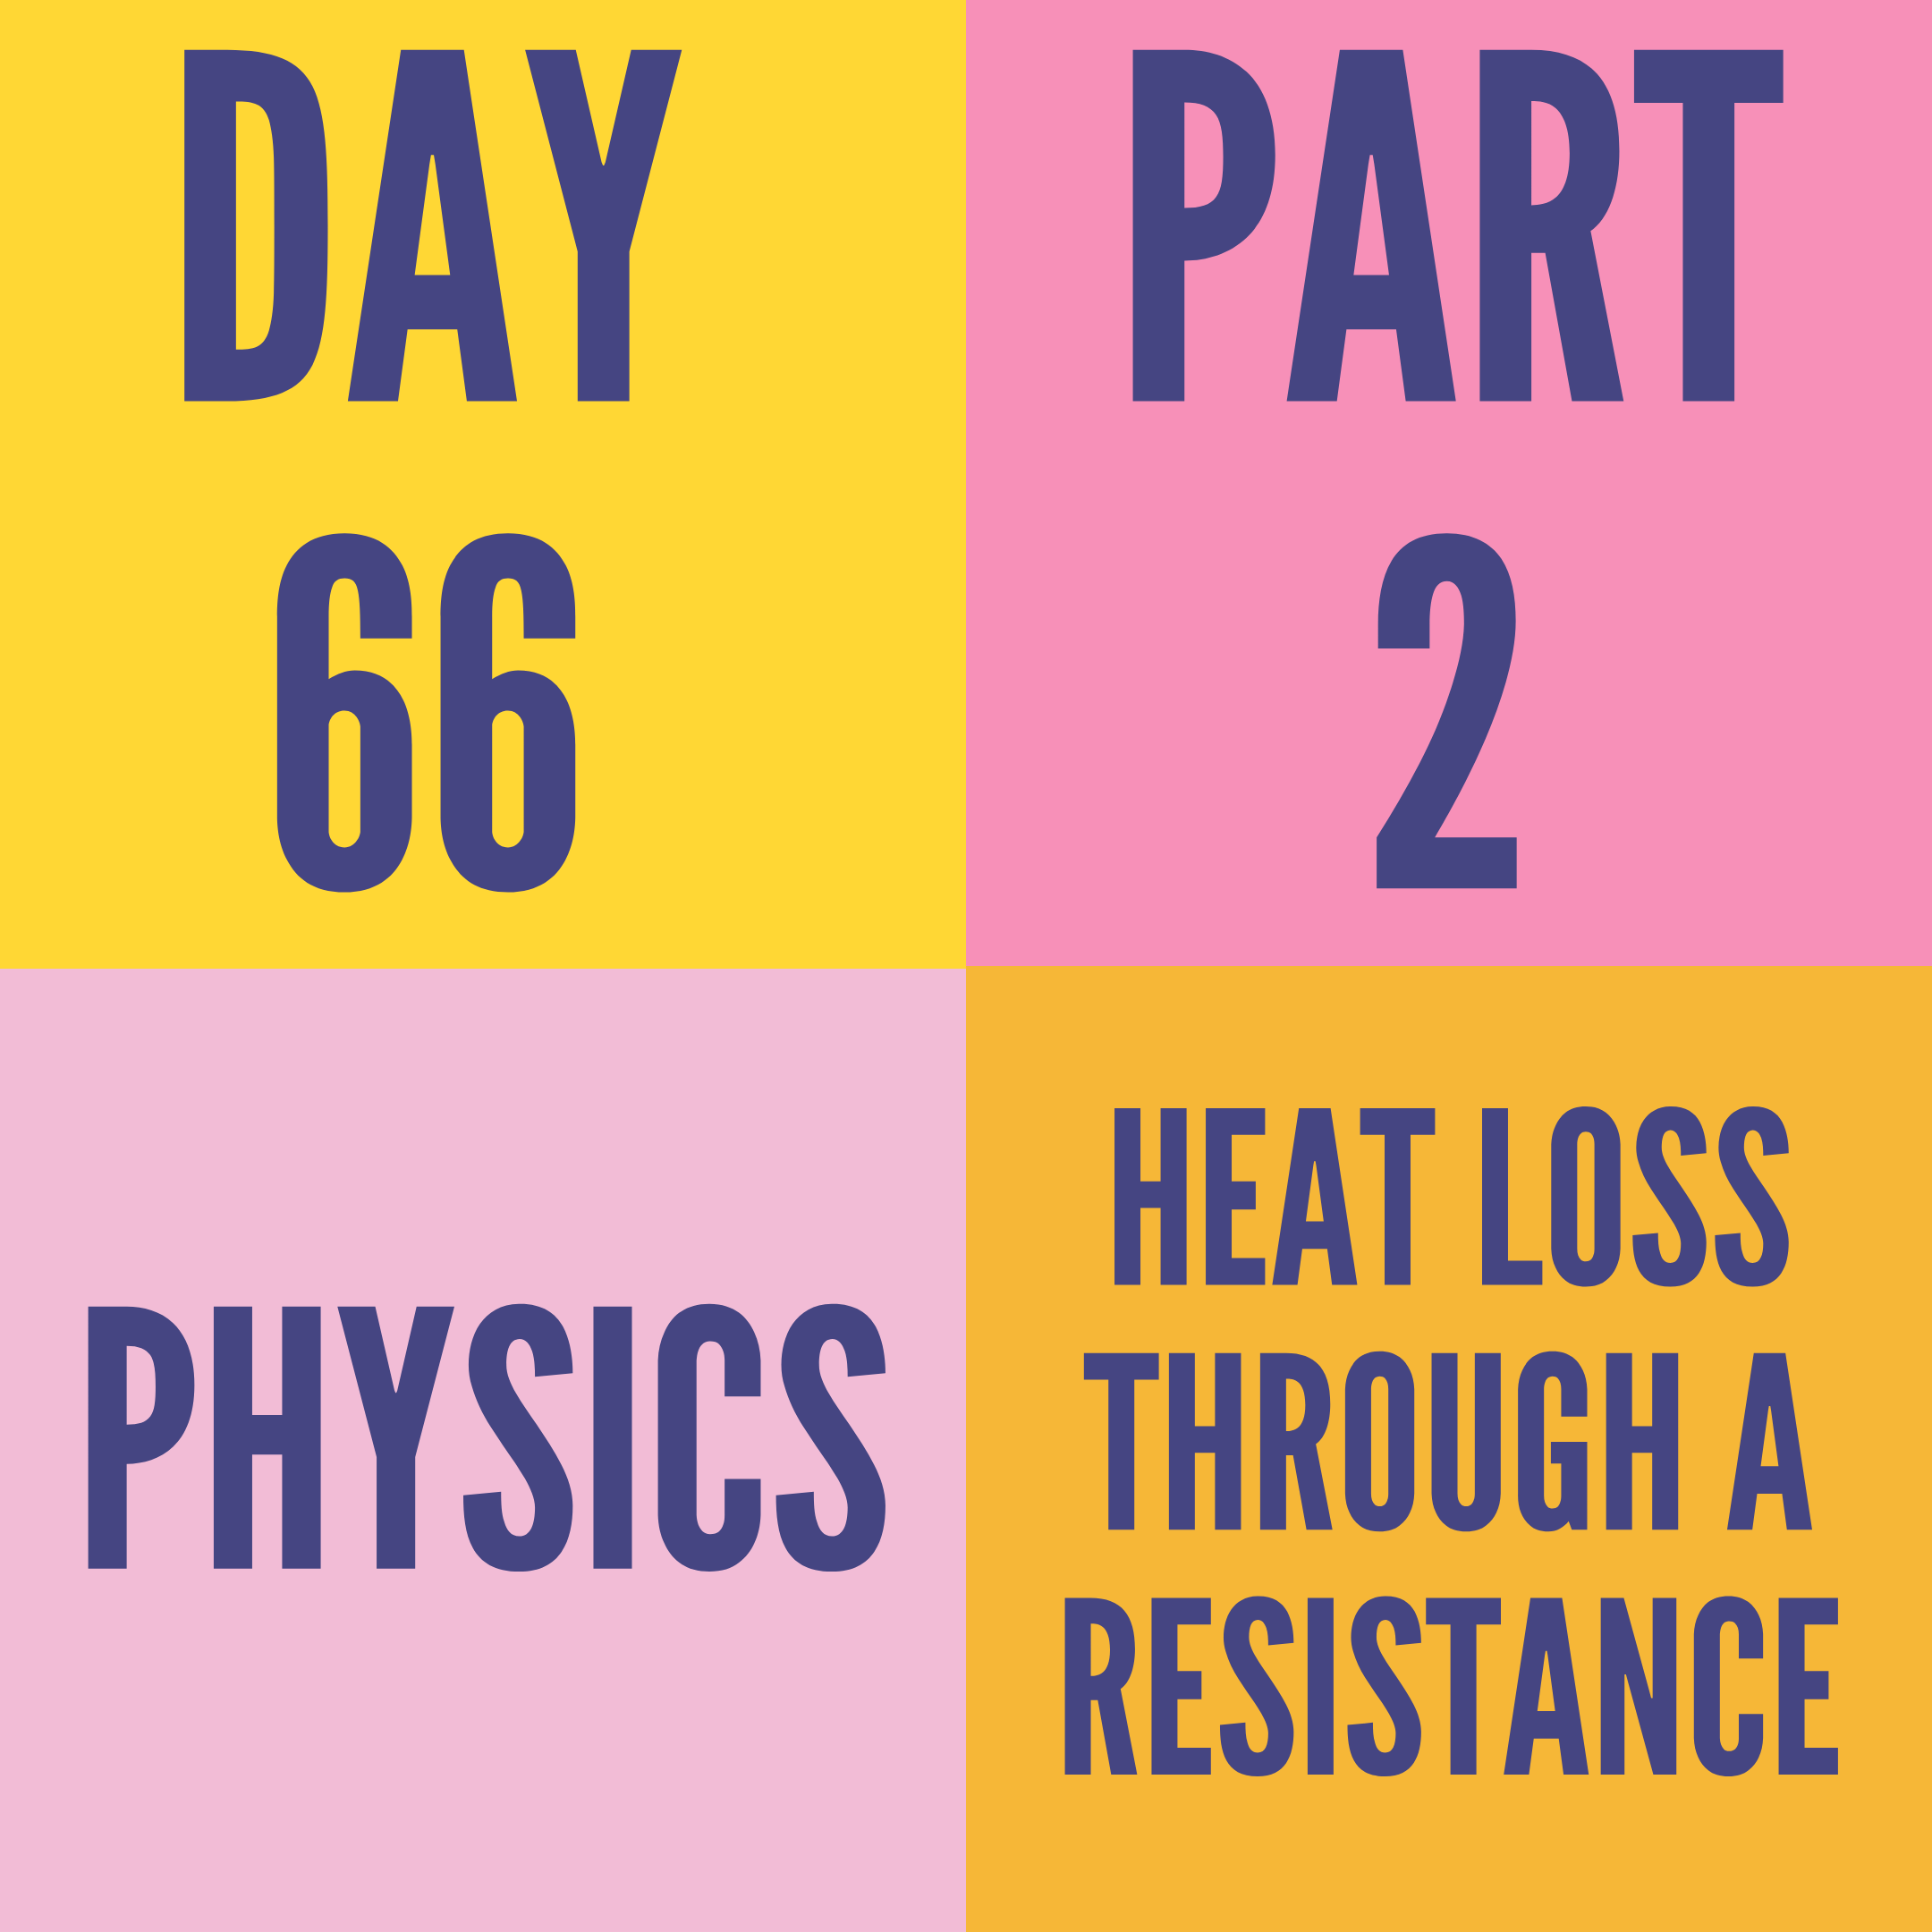 DAY-66 PART-2  HEAT LOSS THROUGH A RESISTANCE